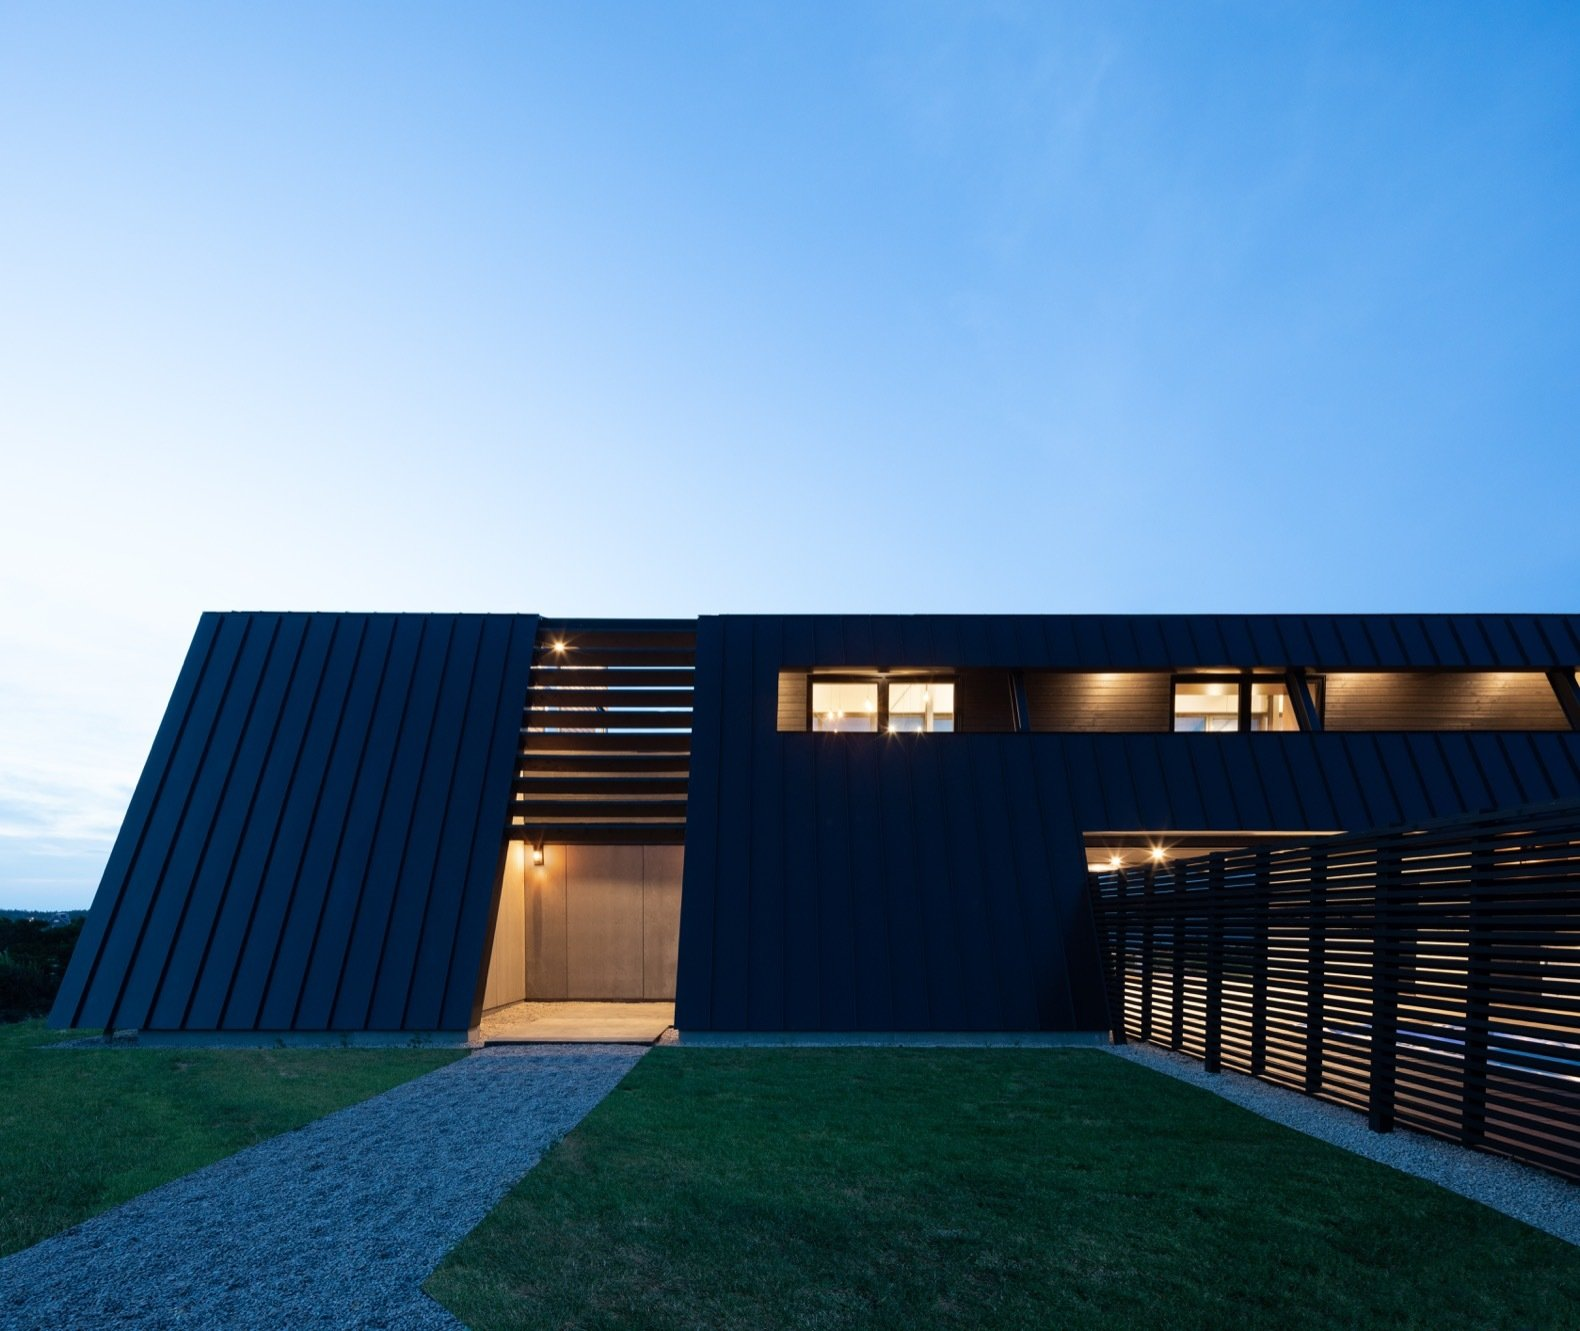 Exterior, Metal Roof Material, Wood Siding Material, House Building Type, Concrete Siding Material, Metal Siding Material, and Saltbox RoofLine A glimpse of the entrance at dusk from the south elevation. To the right is a swimming pool shielded behind wooden fencing.  Photo 9 of 19 in A Folded Steel Roof Shields a Fortress-Like Abode in Nova Scotia